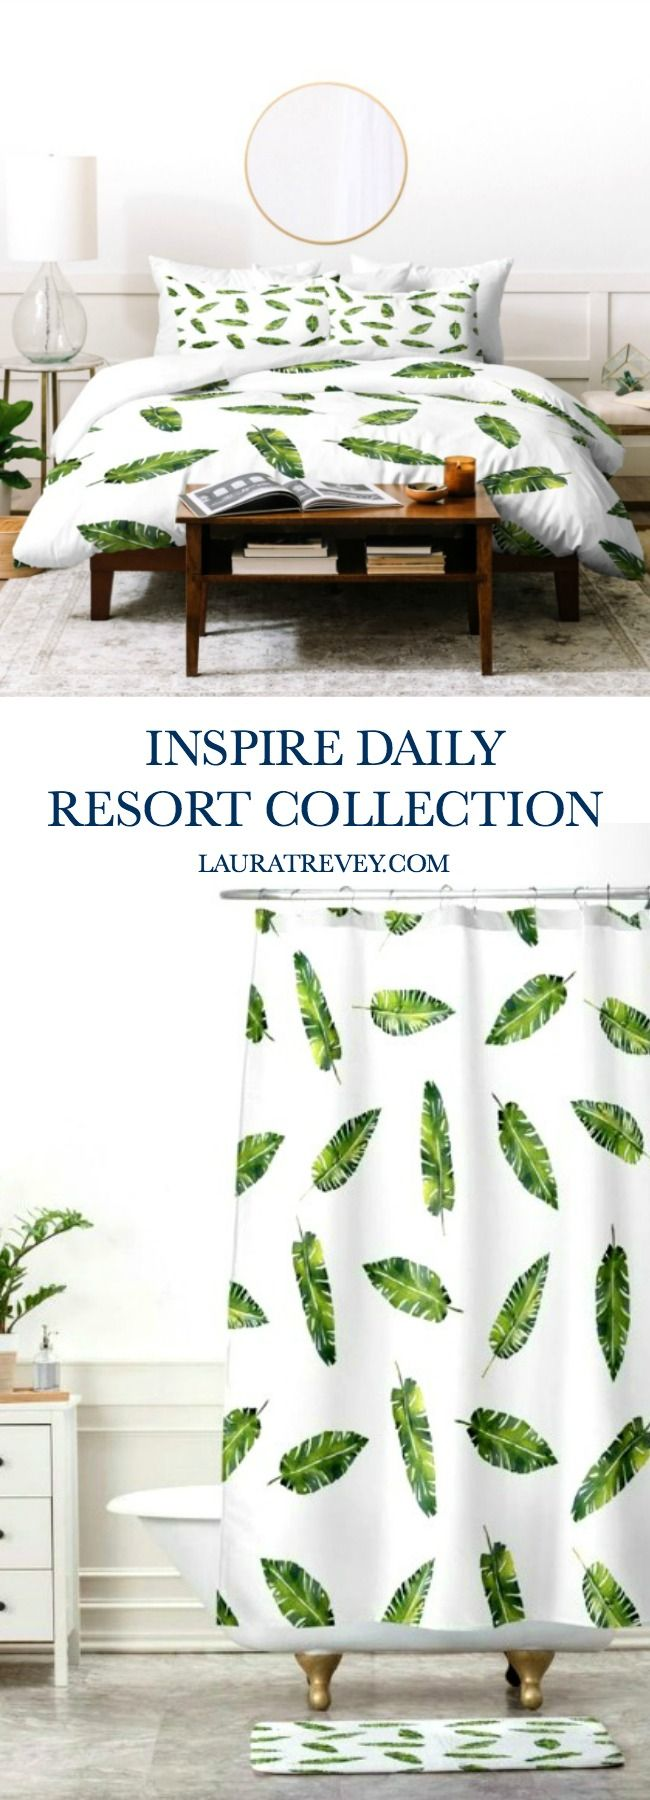 Shop the Inspire Daily Collection in a refreshing sage green leaf print. Create your resort inspired experience at home.